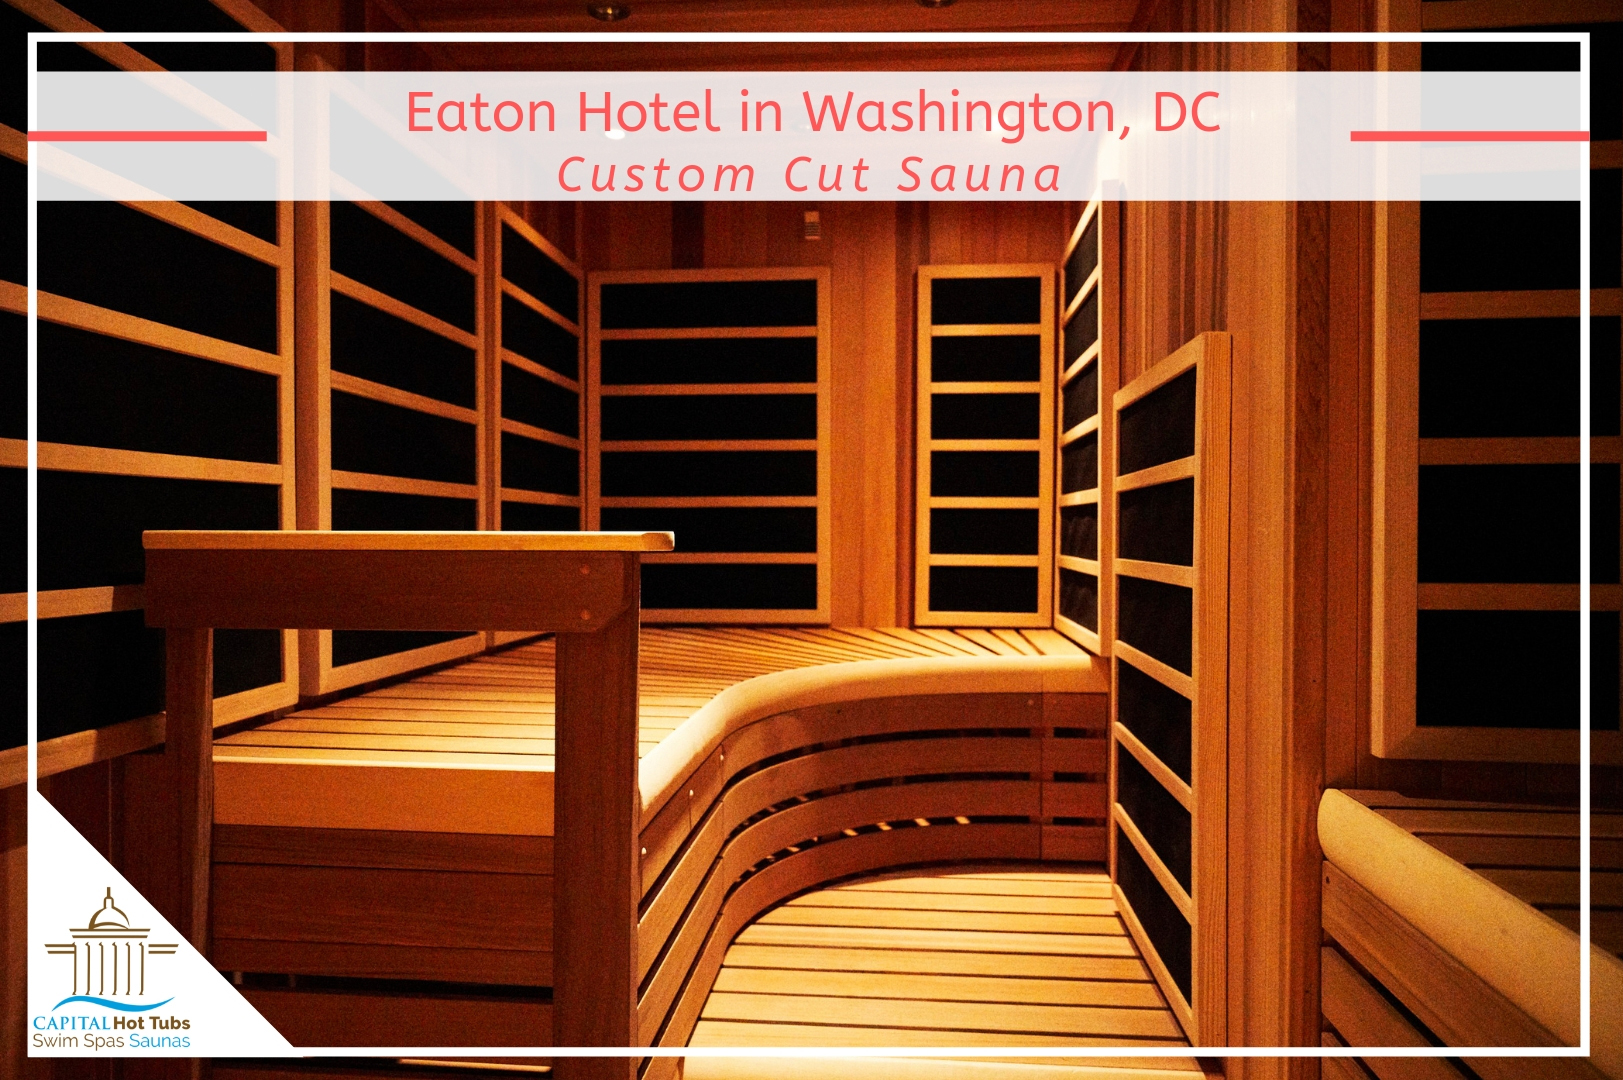 custom cut sauna washington dc